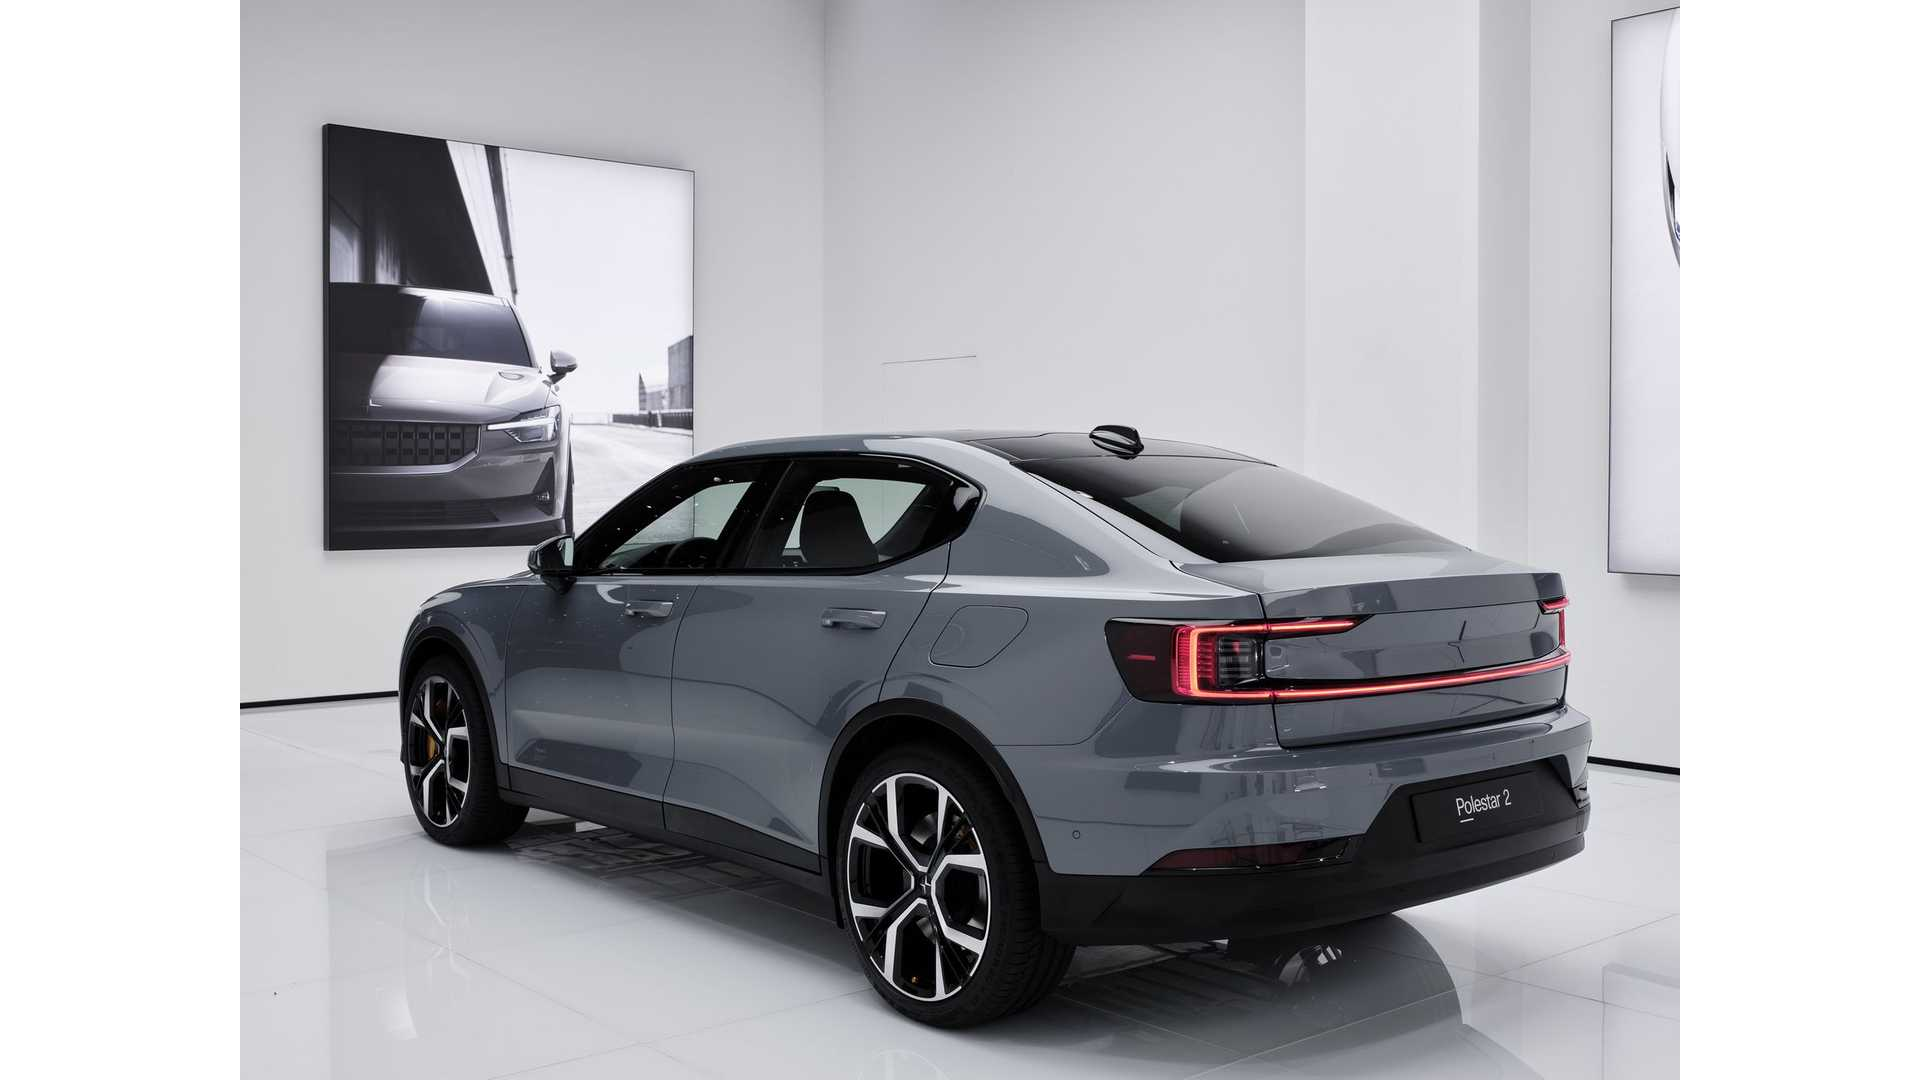 Polestar 2 Electric Car Facts Specs Images Videos 1920x1080